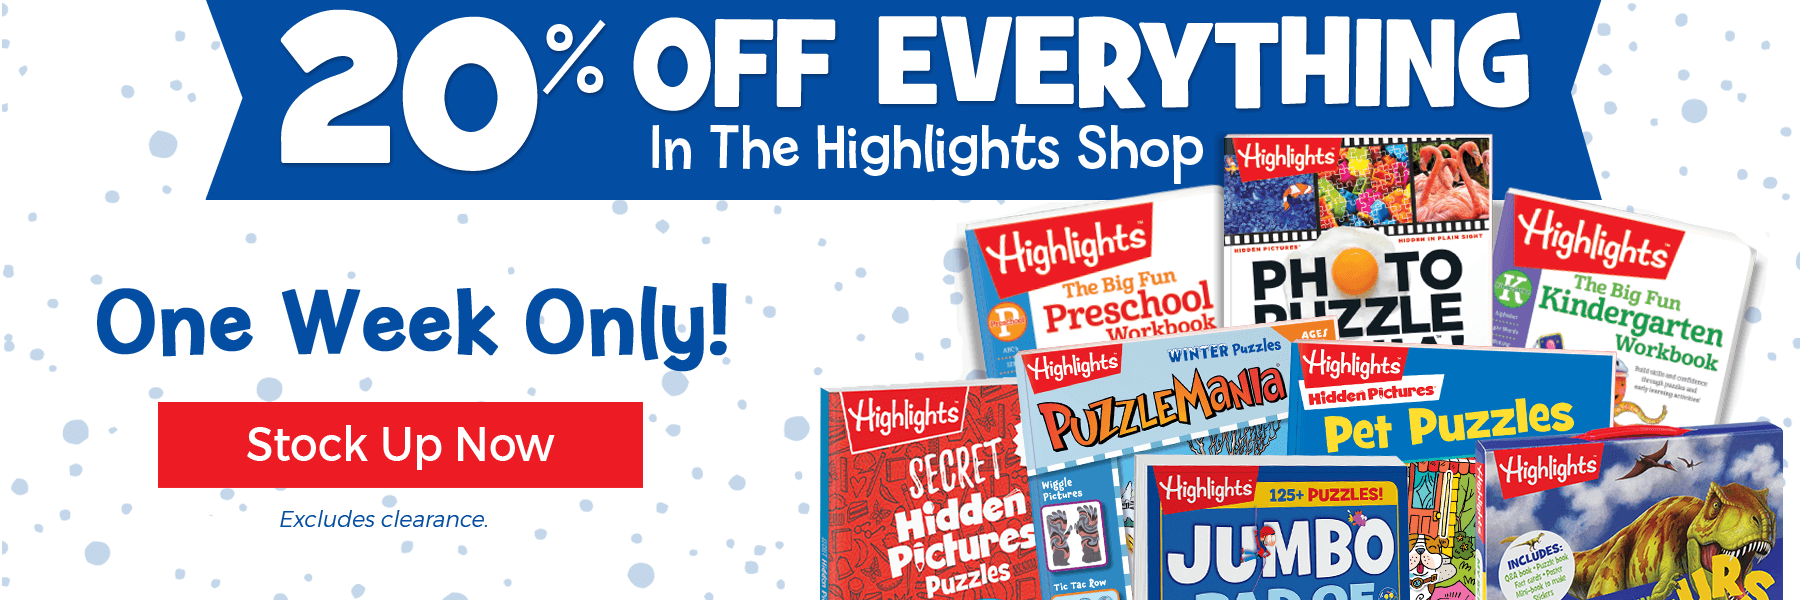 For one week only take20% off everything in The Highlights Shop, excluding clearance items